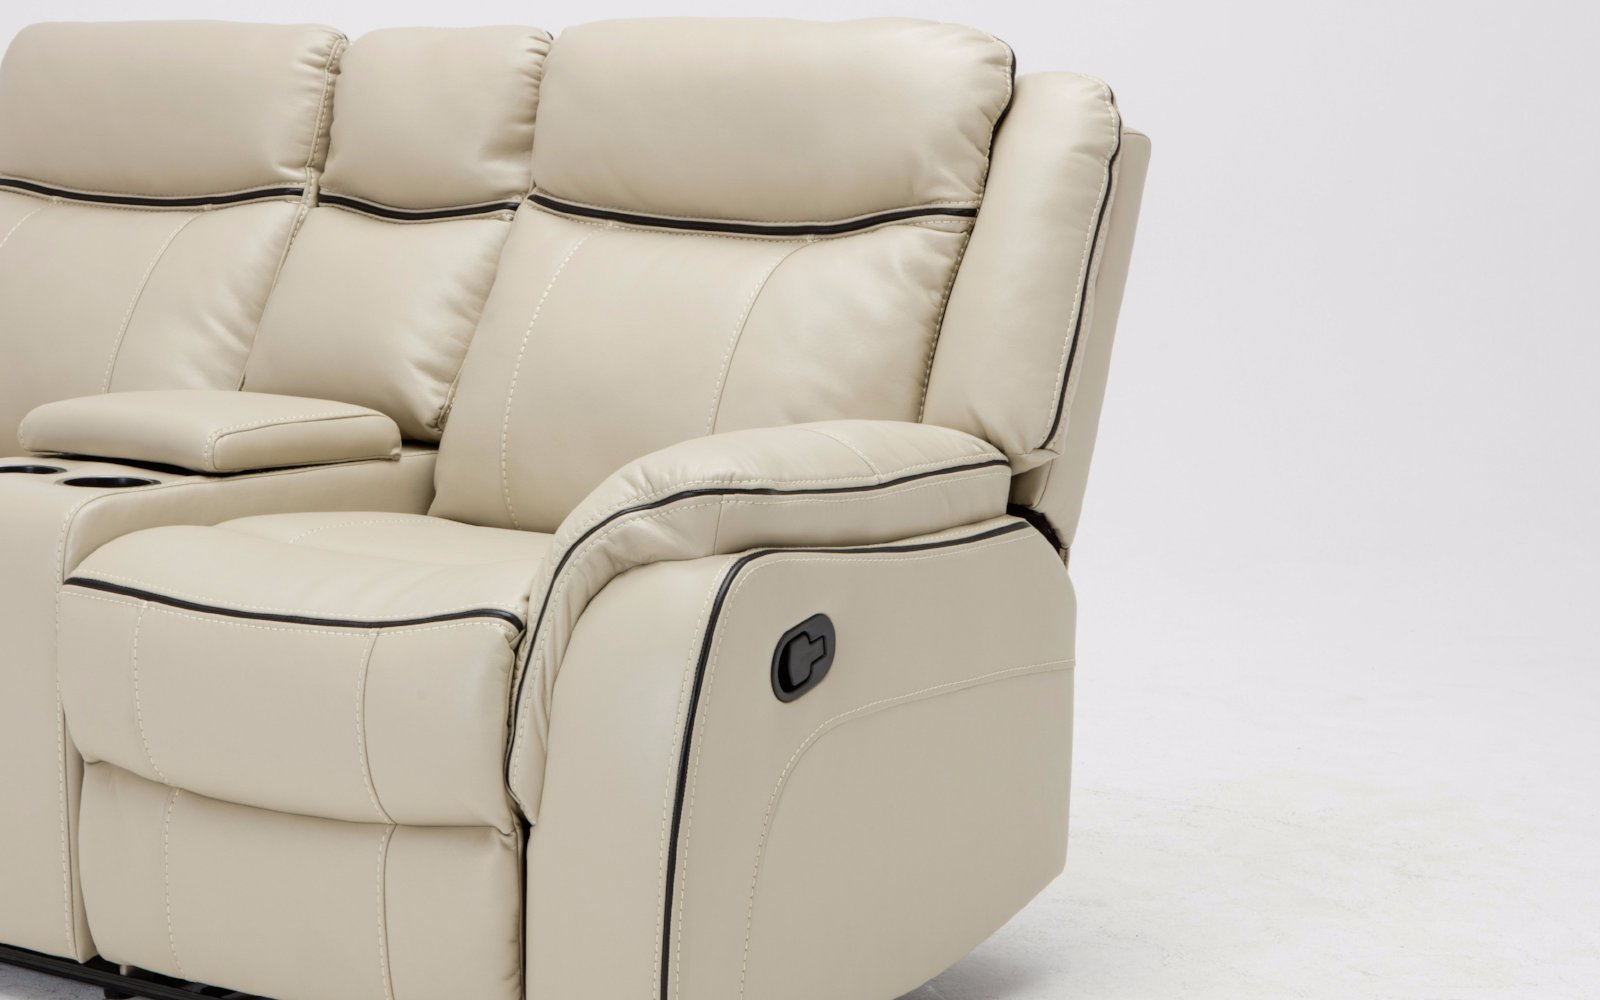 Paul Classic Bonded Leather Recliner Sectional : beige leather recliner - islam-shia.org